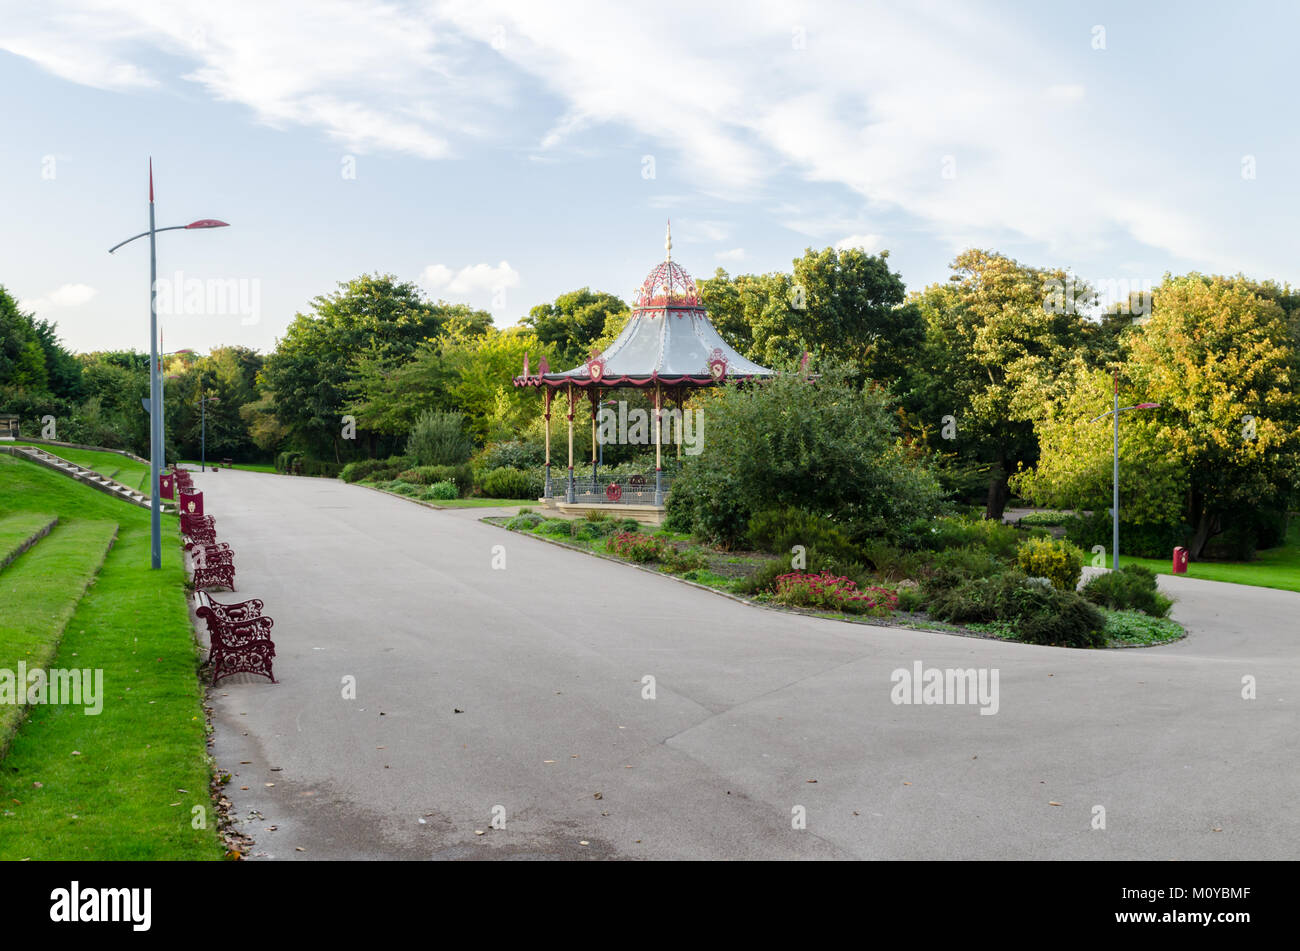 A North Facing View of the Terrace and Bandstand in South Marine Park, South Tyneside Stock Photo